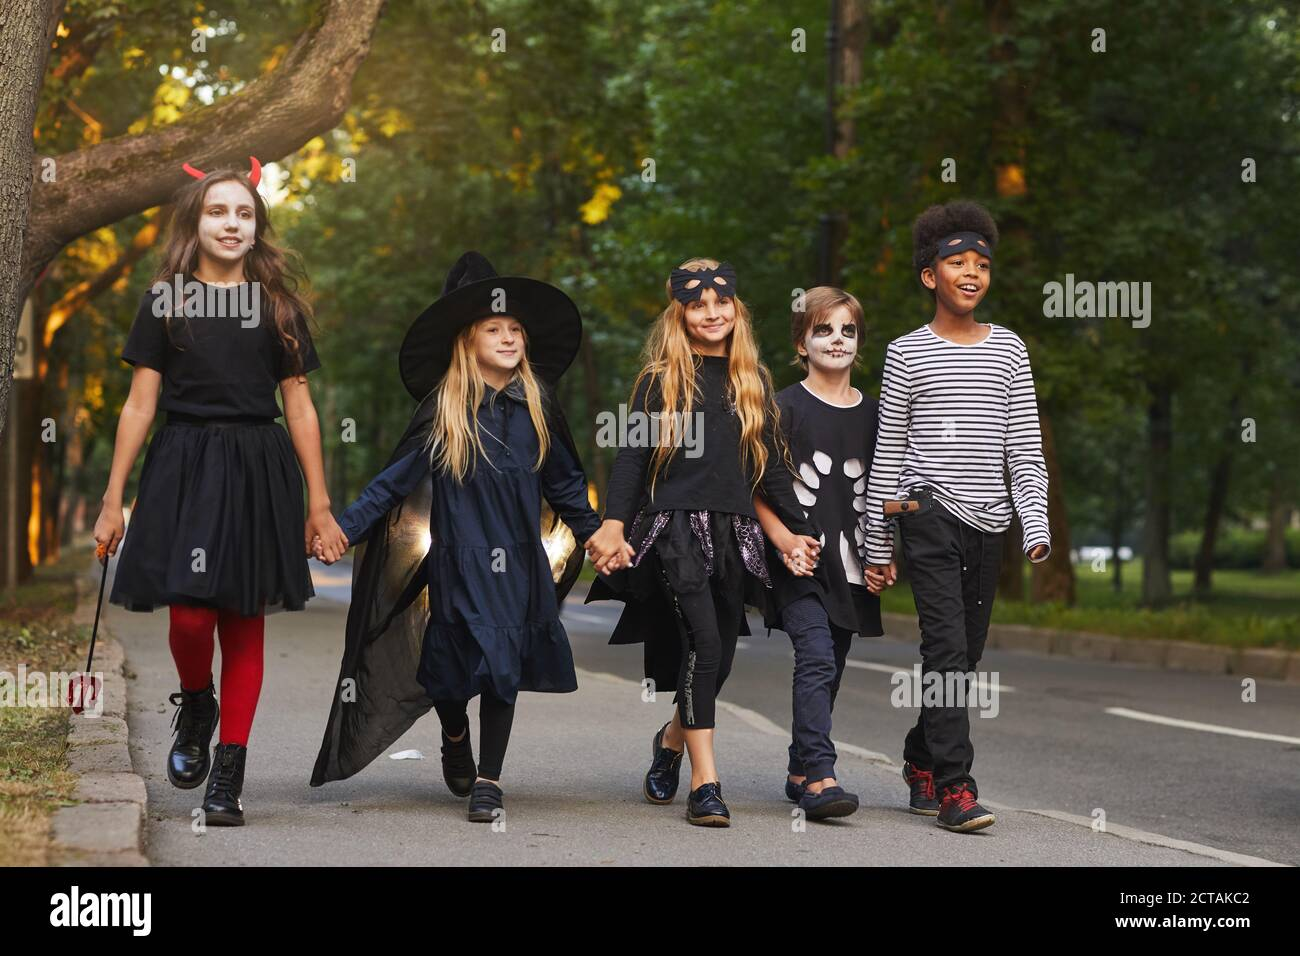 Full length portrait of multi-ethnic group of kids walking in street while trick or treating on Halloween Stock Photo